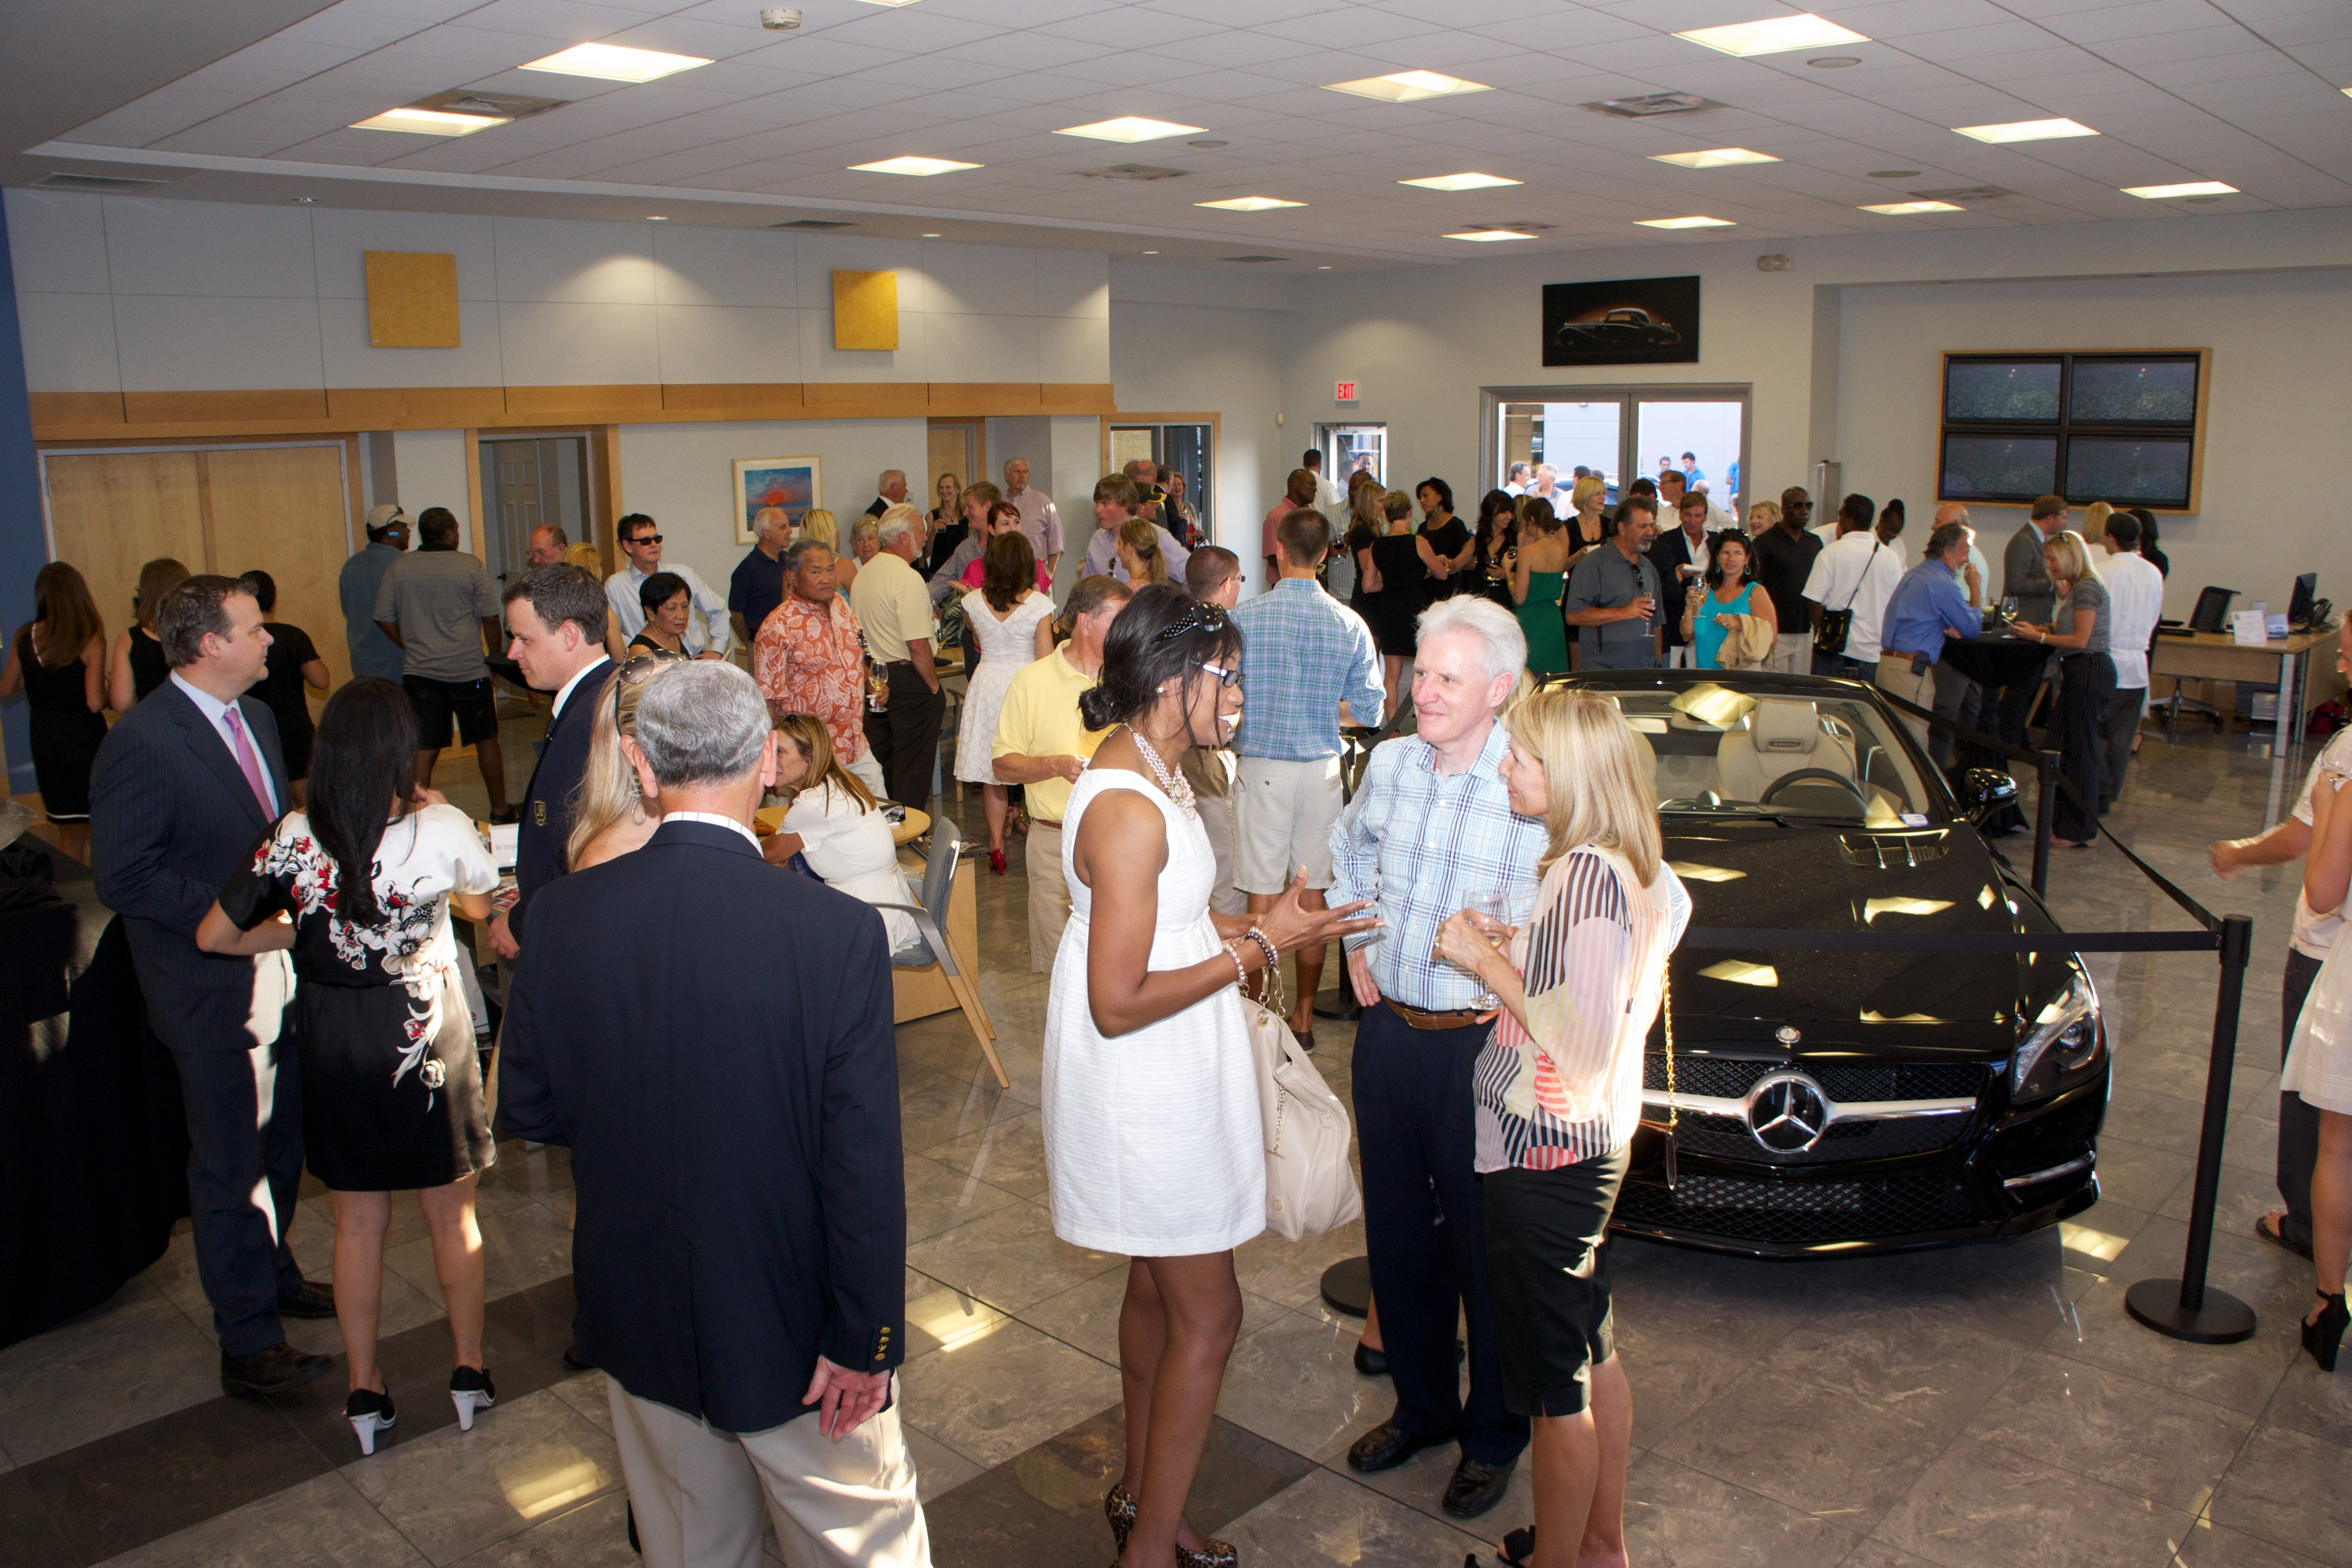 Baker Motor pany and 1 200 Guests Celebrate Arrival of New